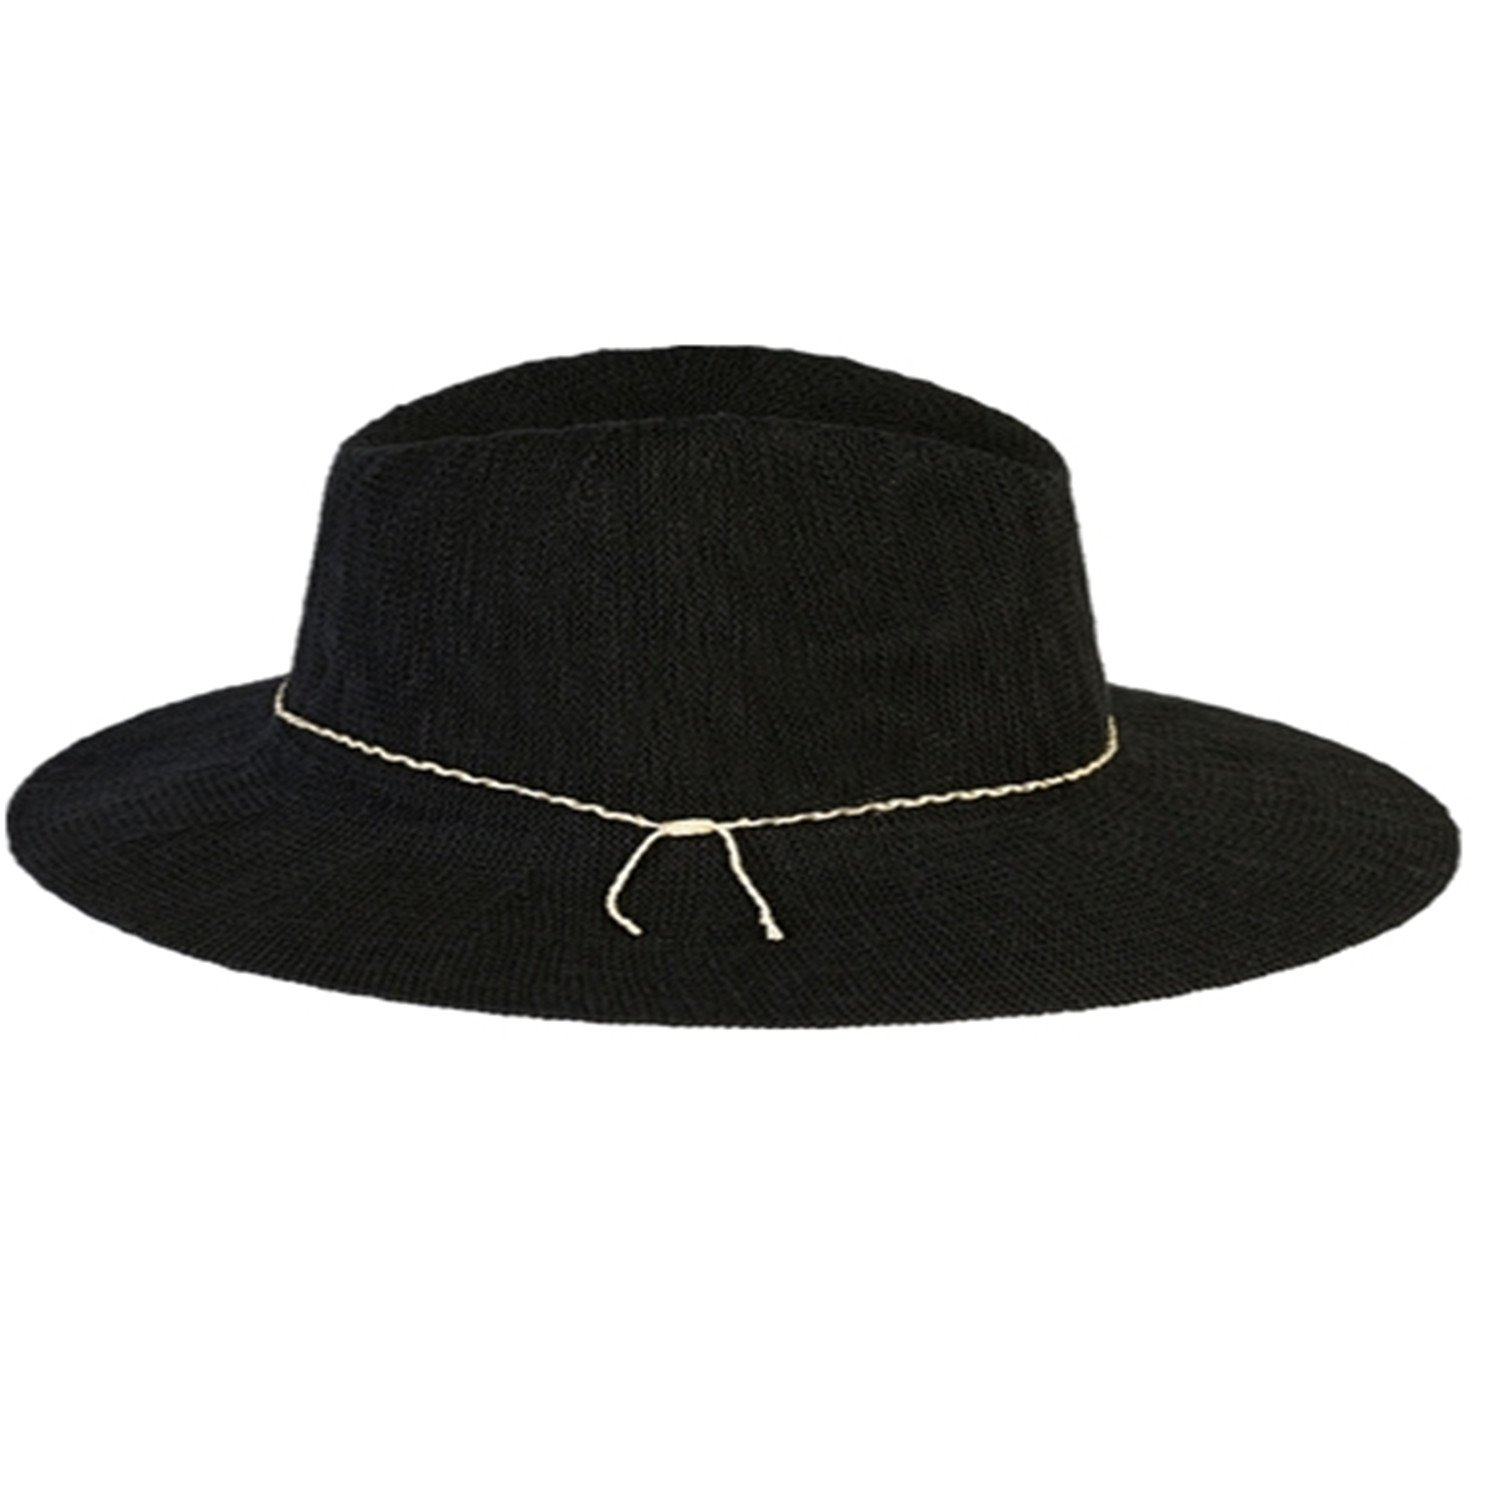 Sllxgli Spain style New Black Braided Panama Hat Vacation